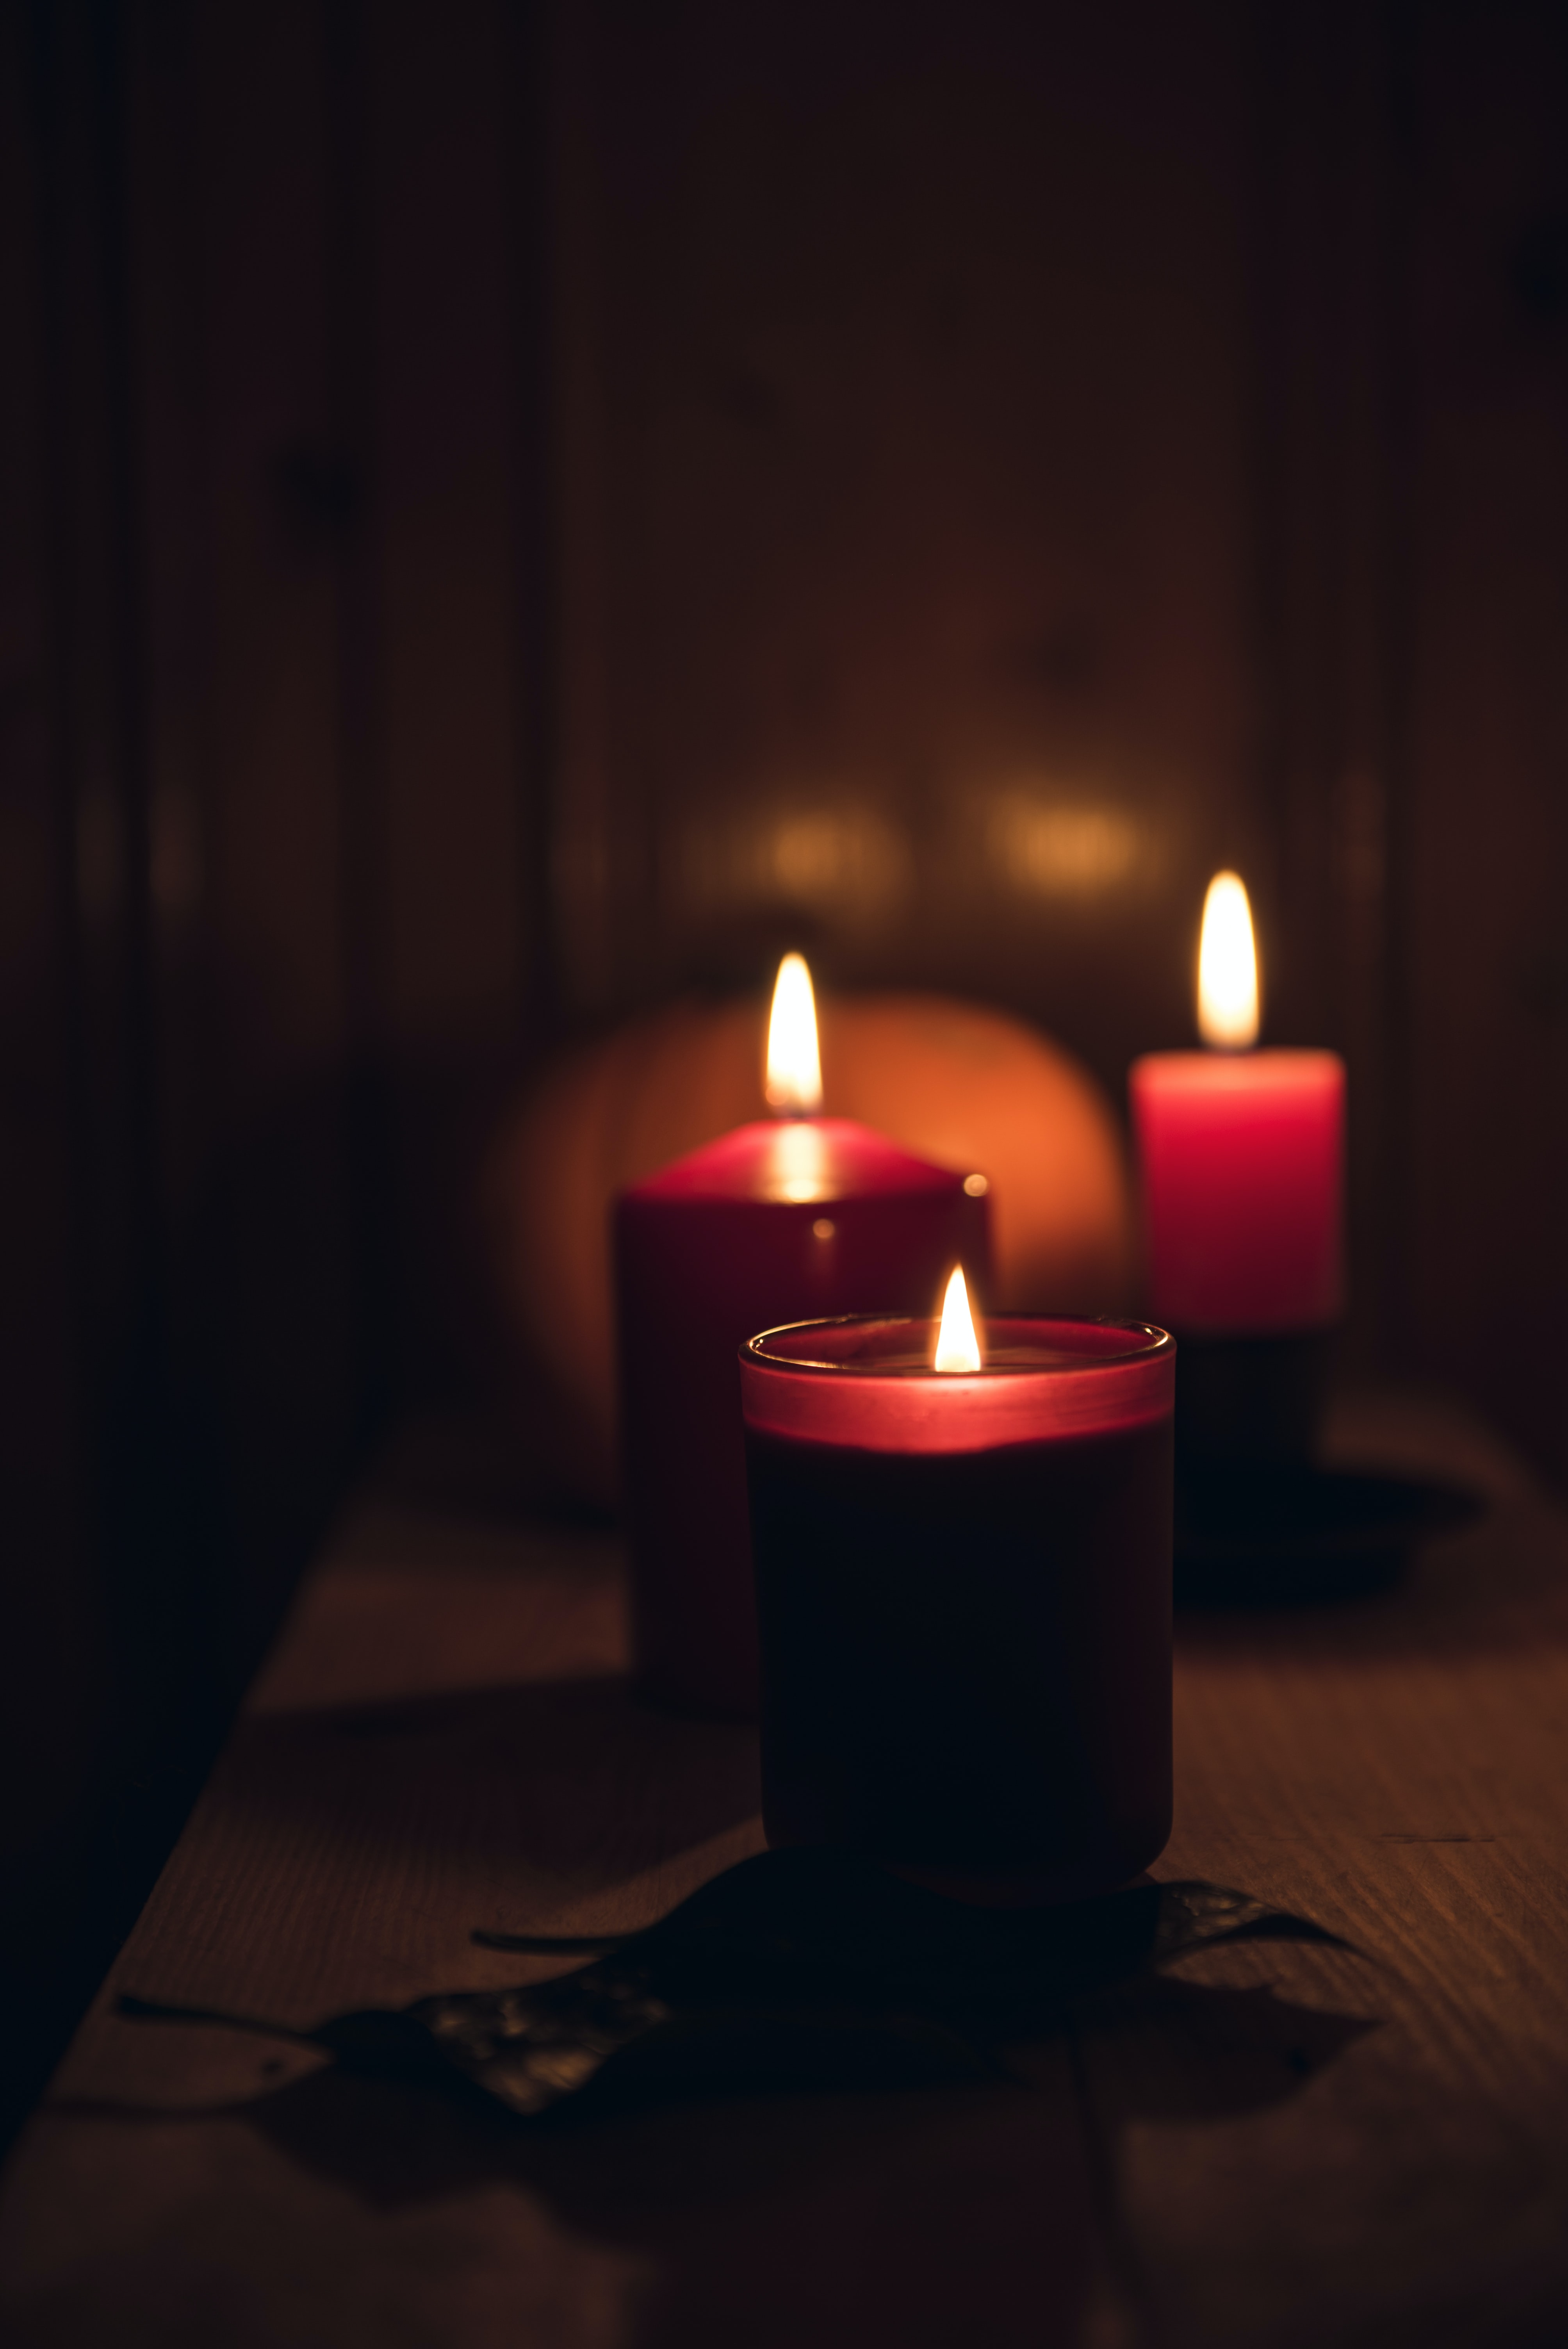 candles with fire during nighttime